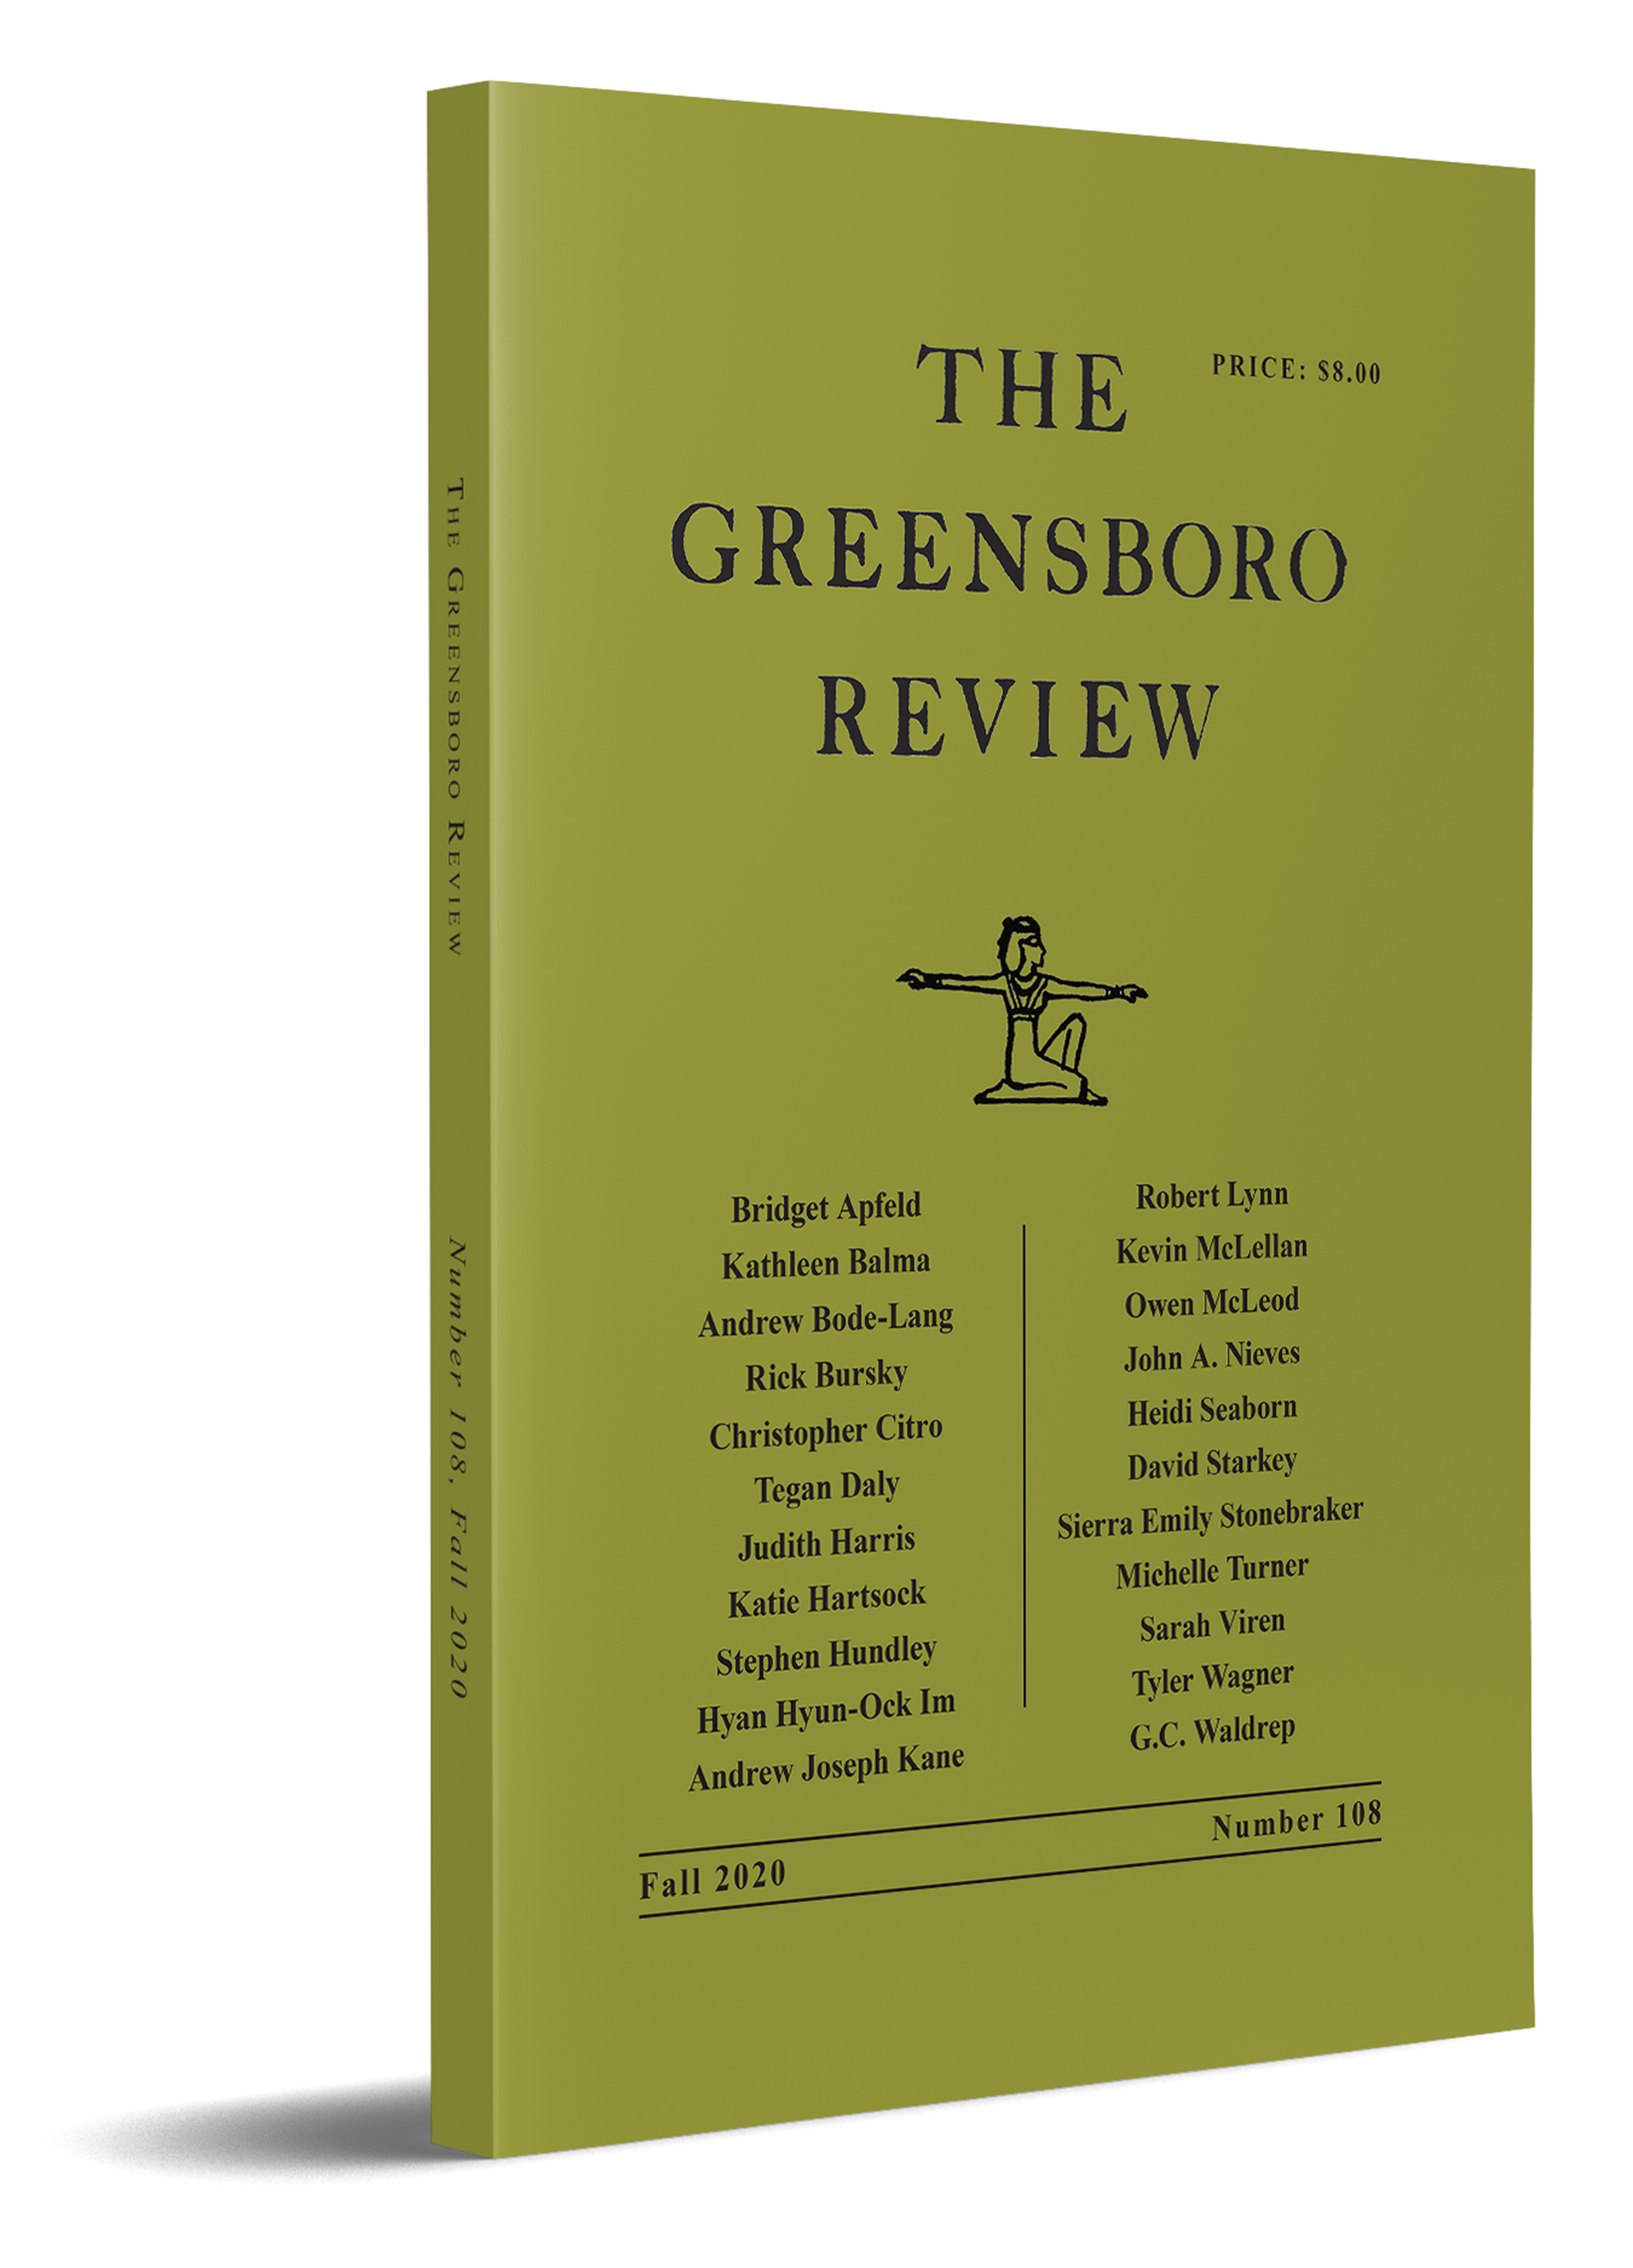 The Greensboro Review, Issue 108, Fall 2020